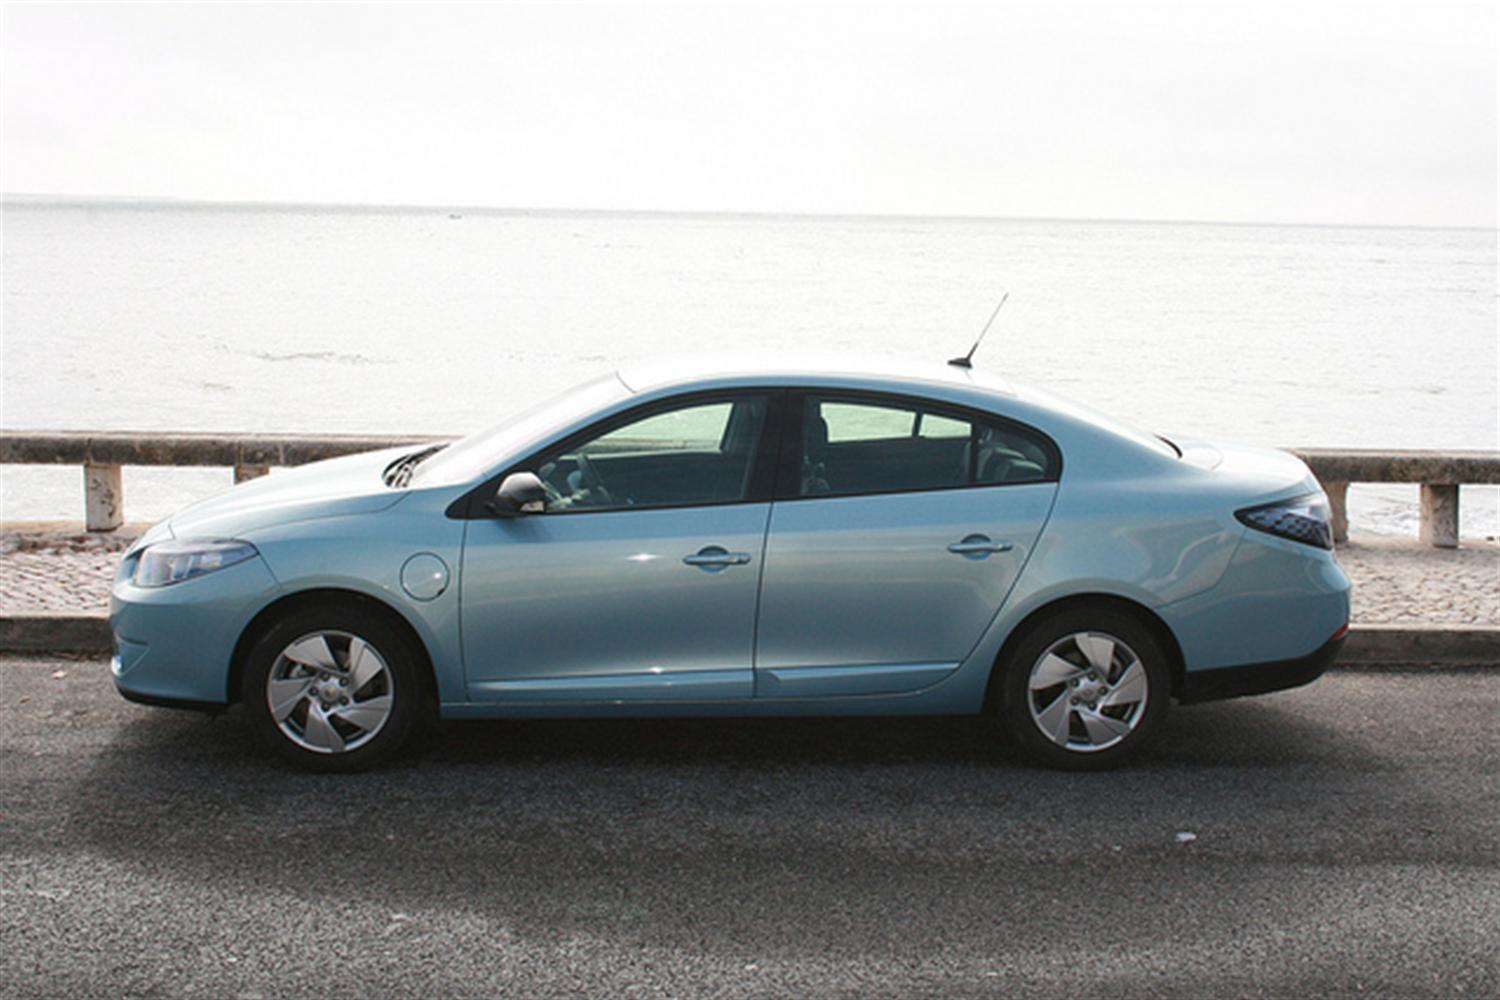 Renault Fluence Test Drives Offered to London Public